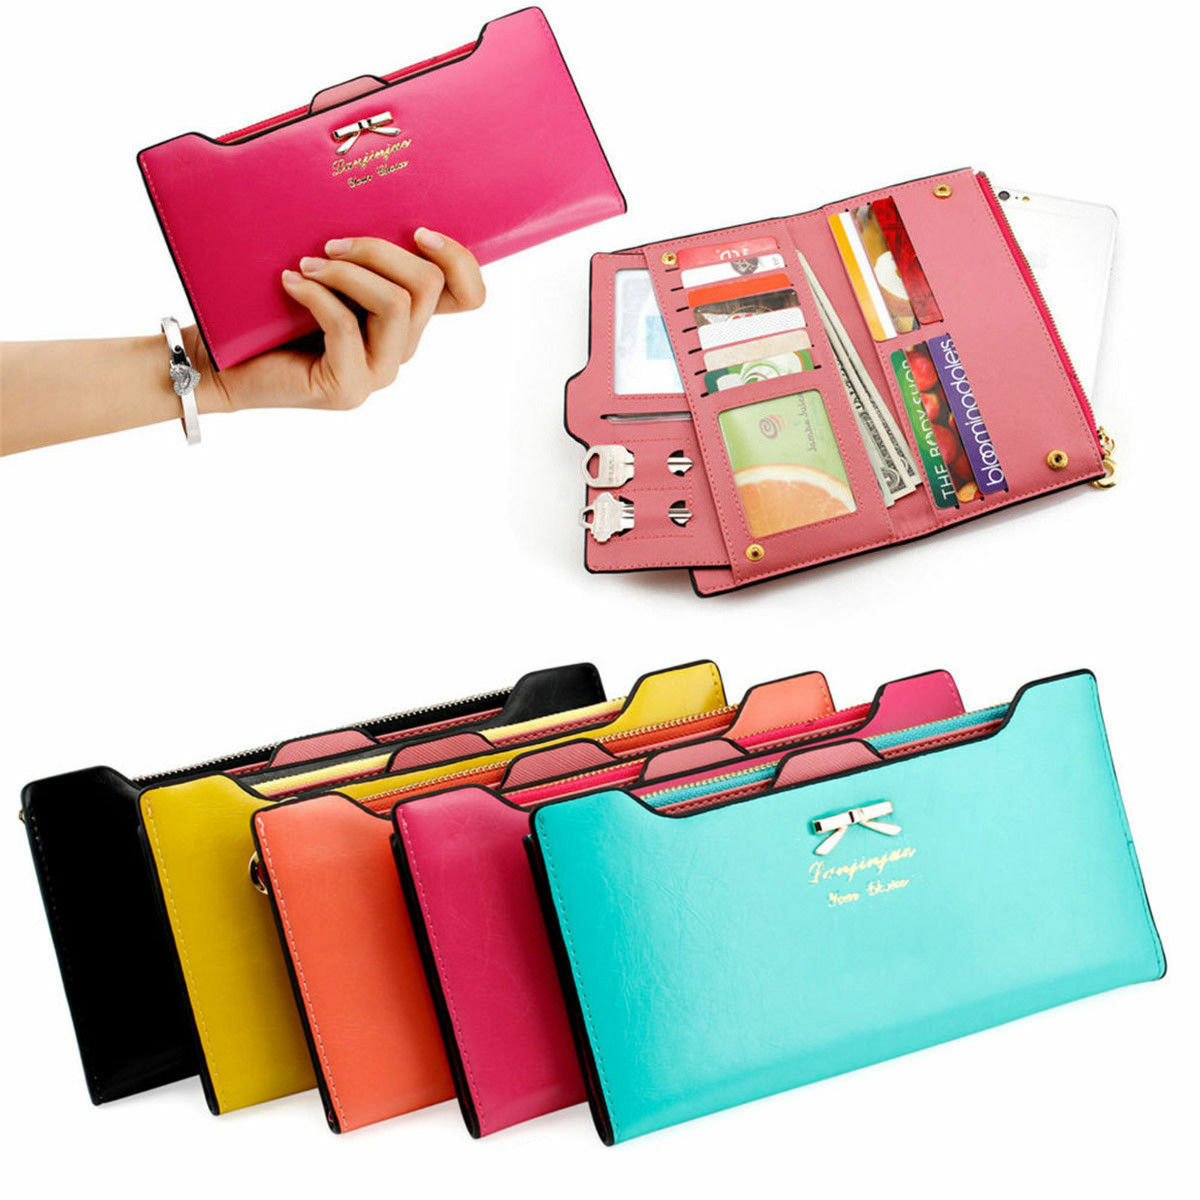 Men's Leather Wallet Bifold ID Card Holder Checkbook Long Clutch Billfold Purse Clothing, Shoes & Accessories